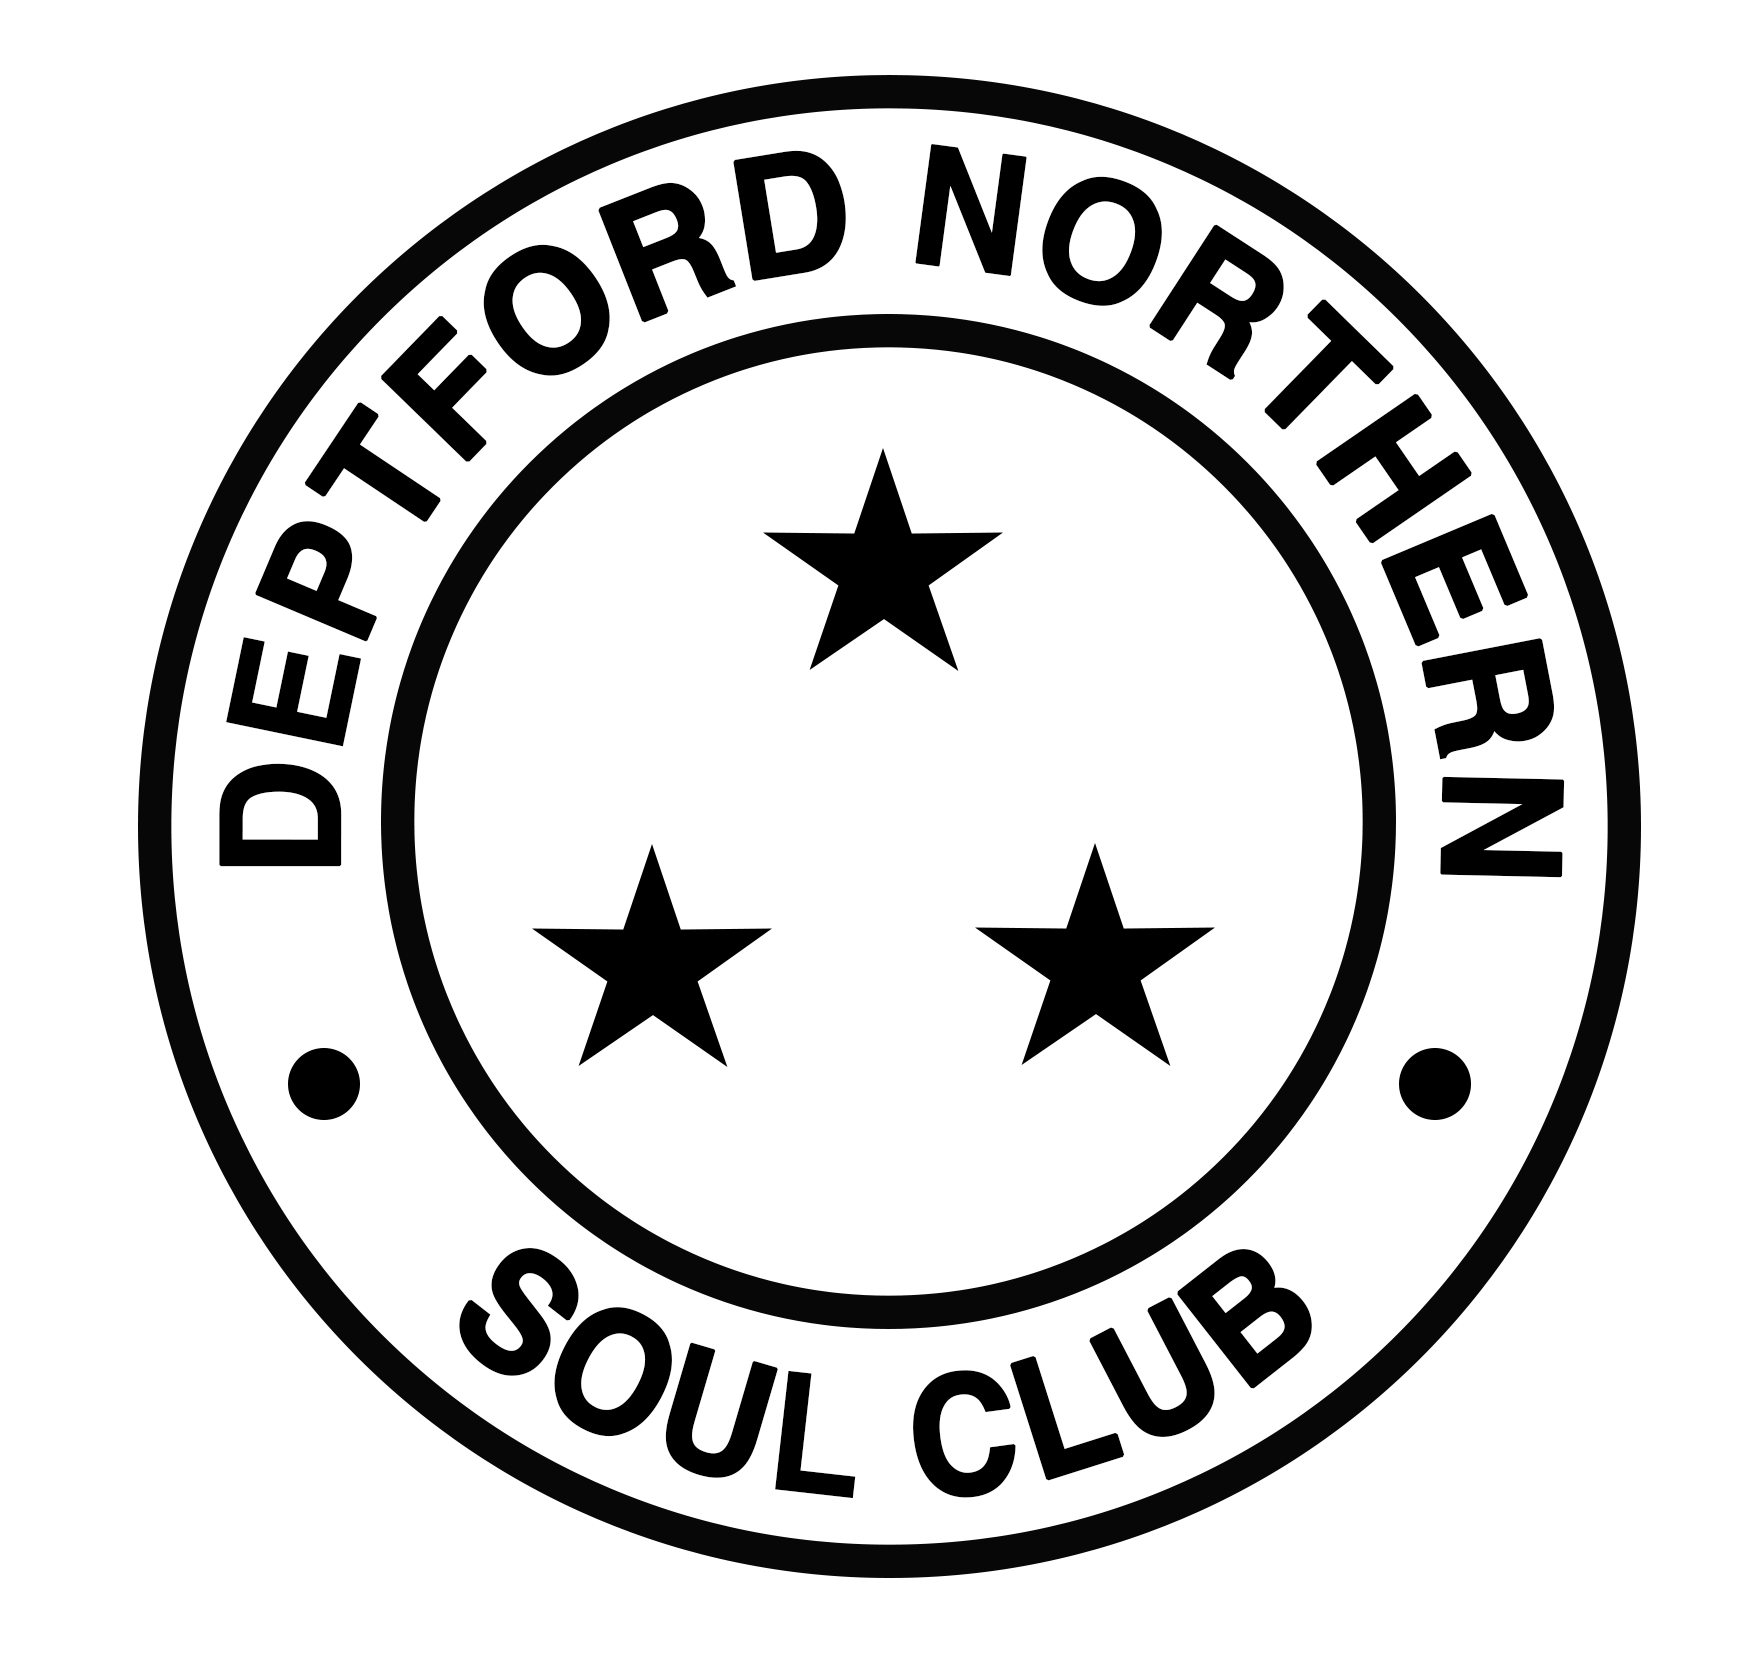 About - Deptford Northern Soul Club